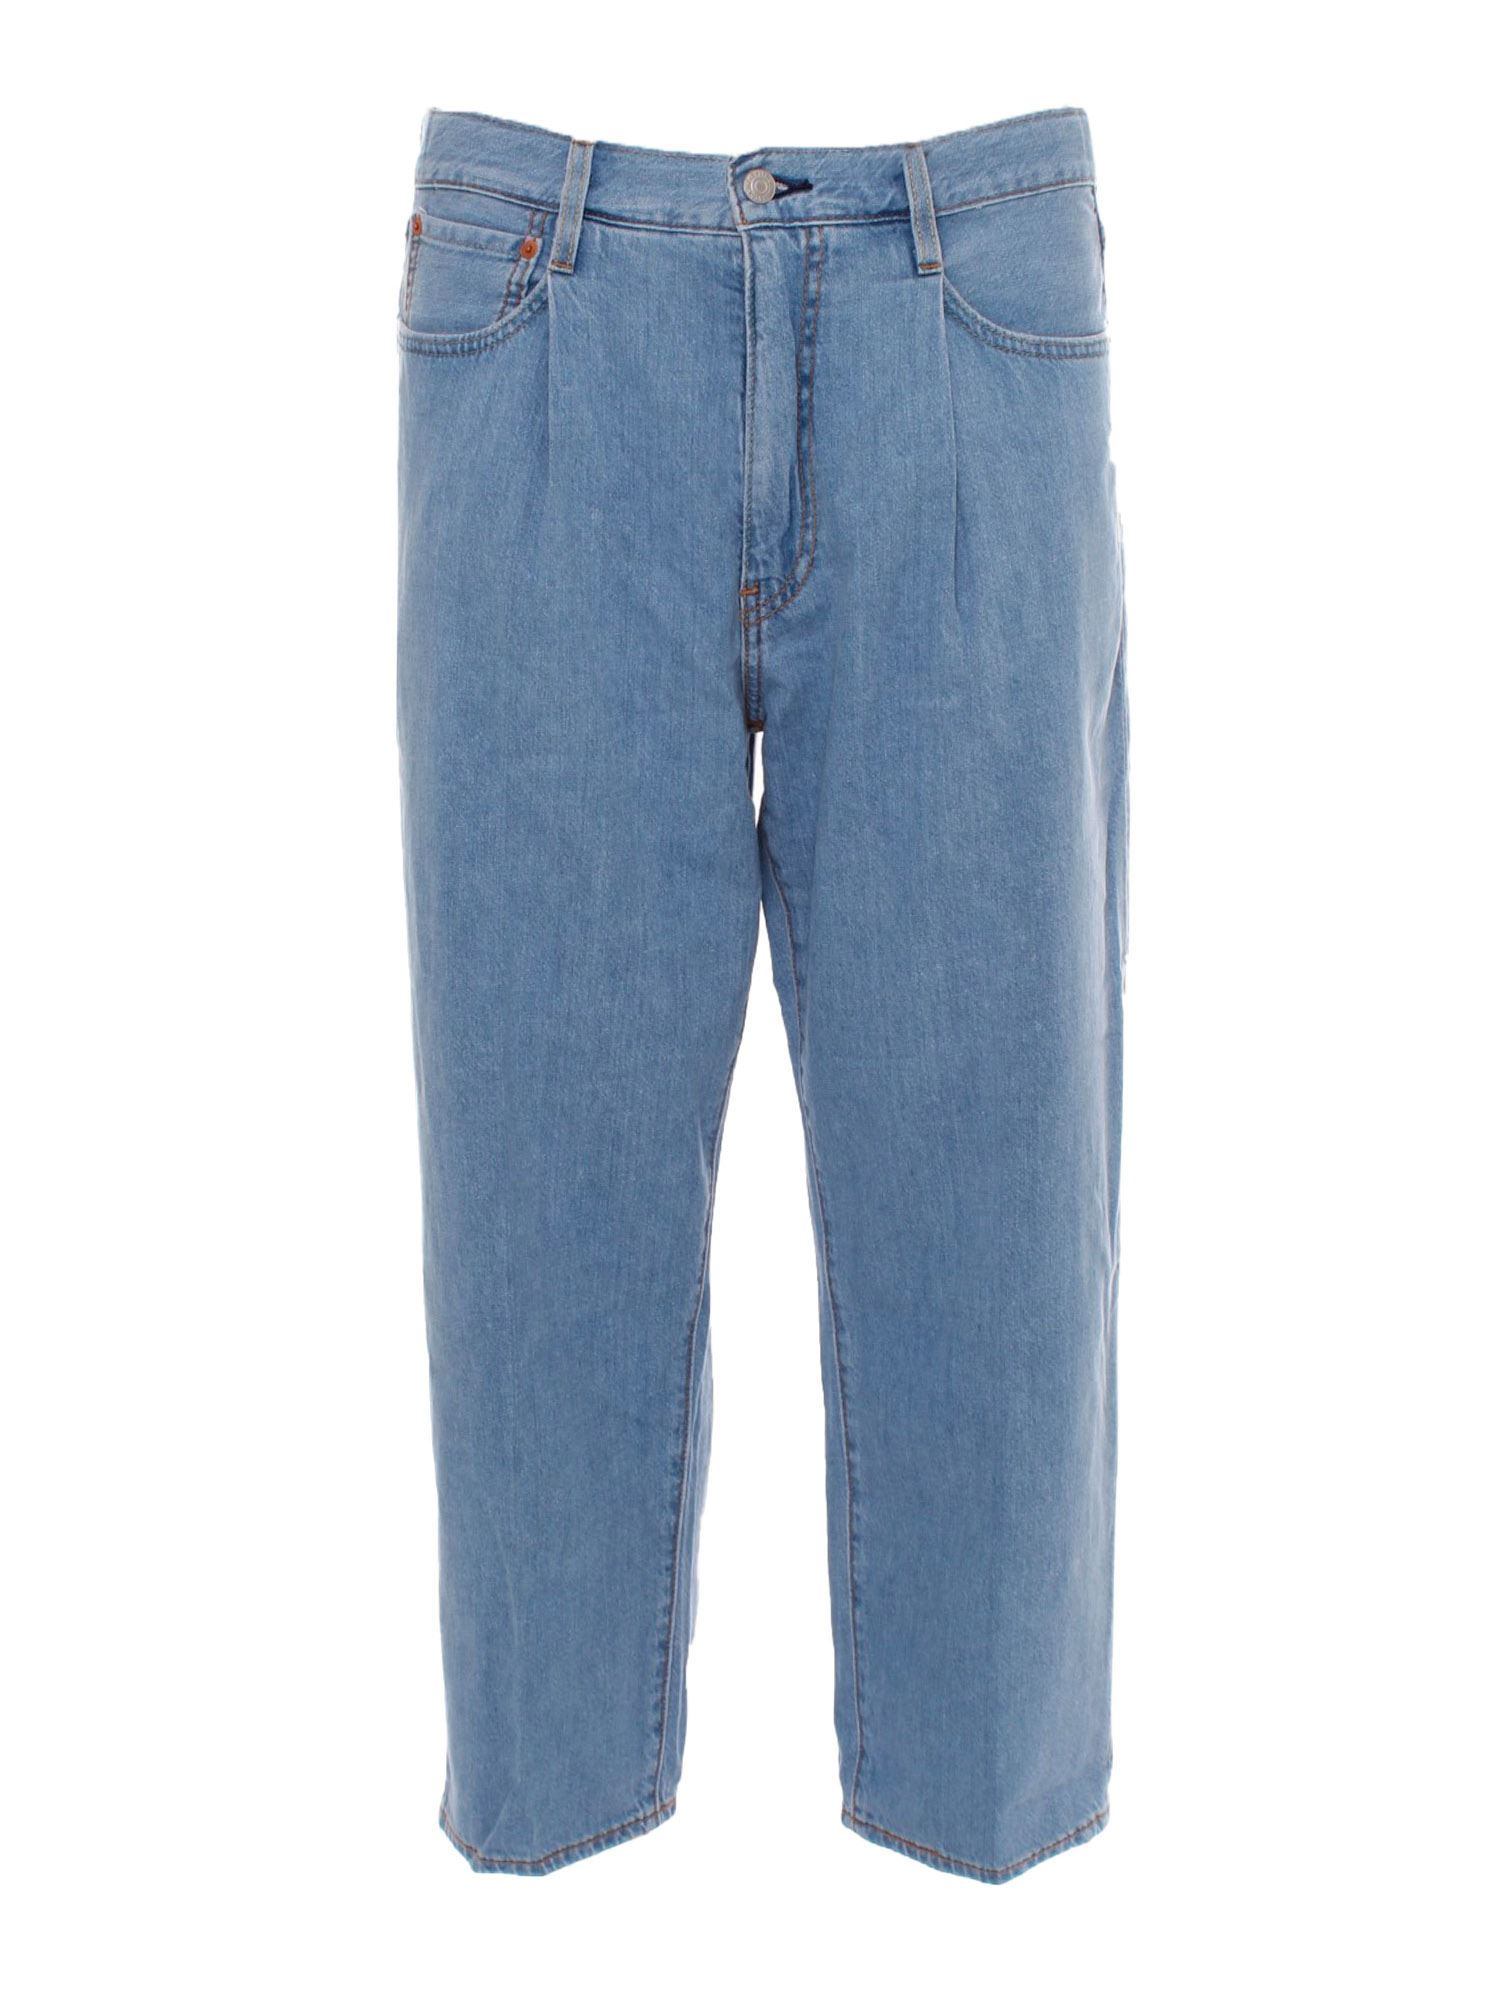 Levi's Cottons LEVI'S STAY LOOSE CROPPED JEANS IN BLUE